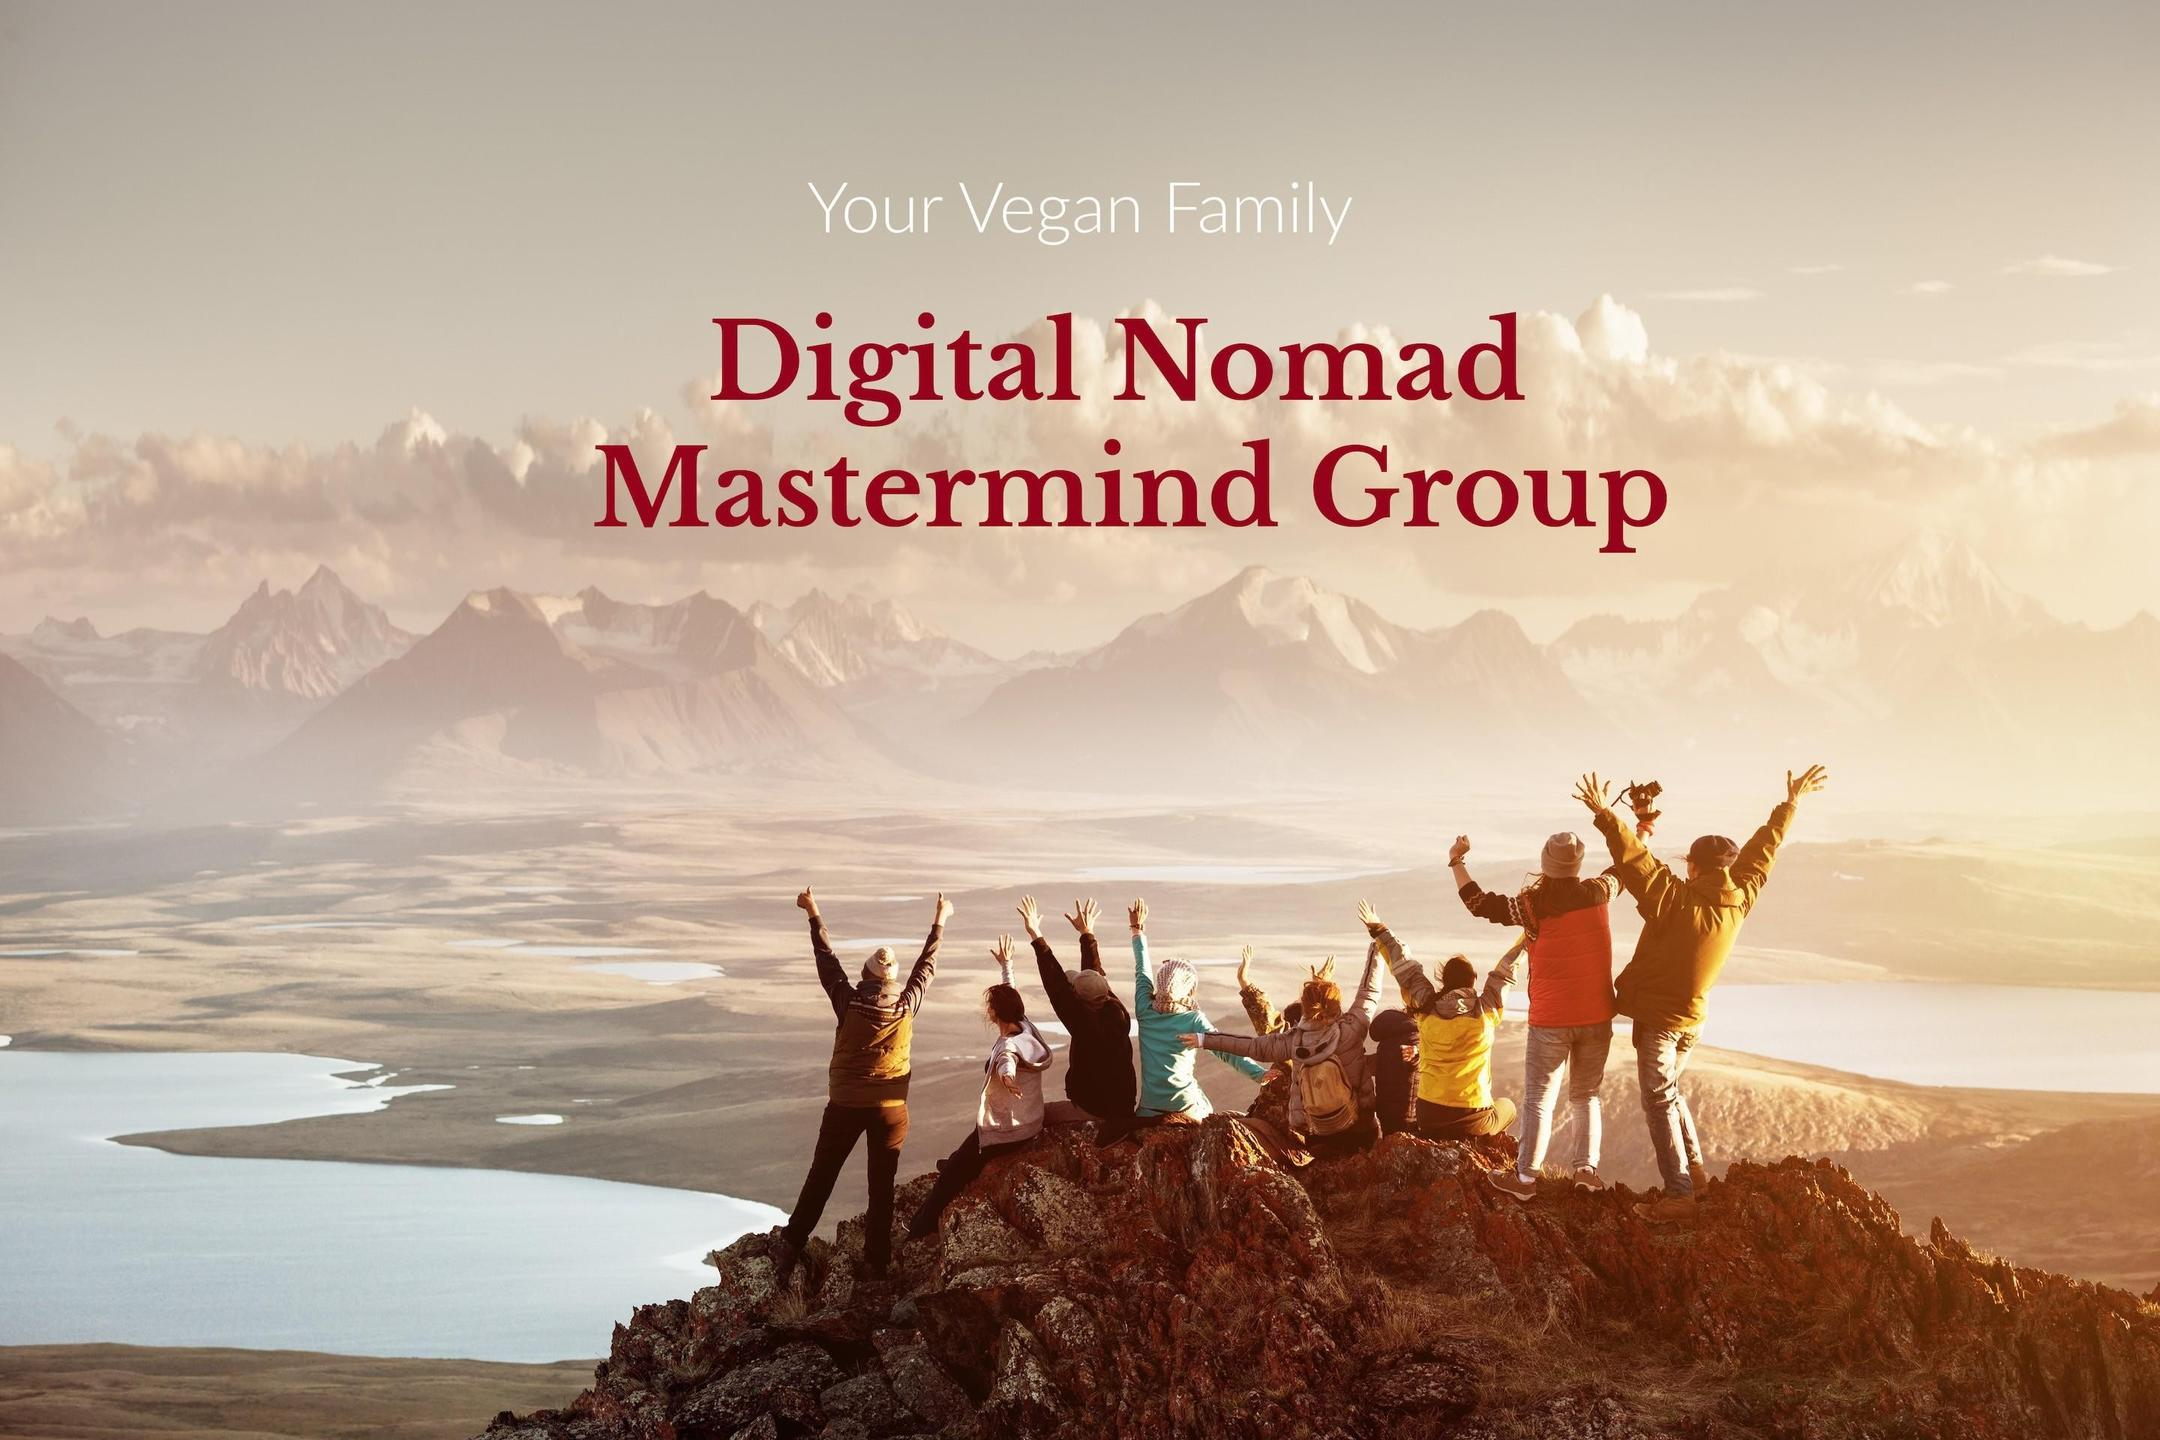 Digital nomad community celebrating on top of a mountain